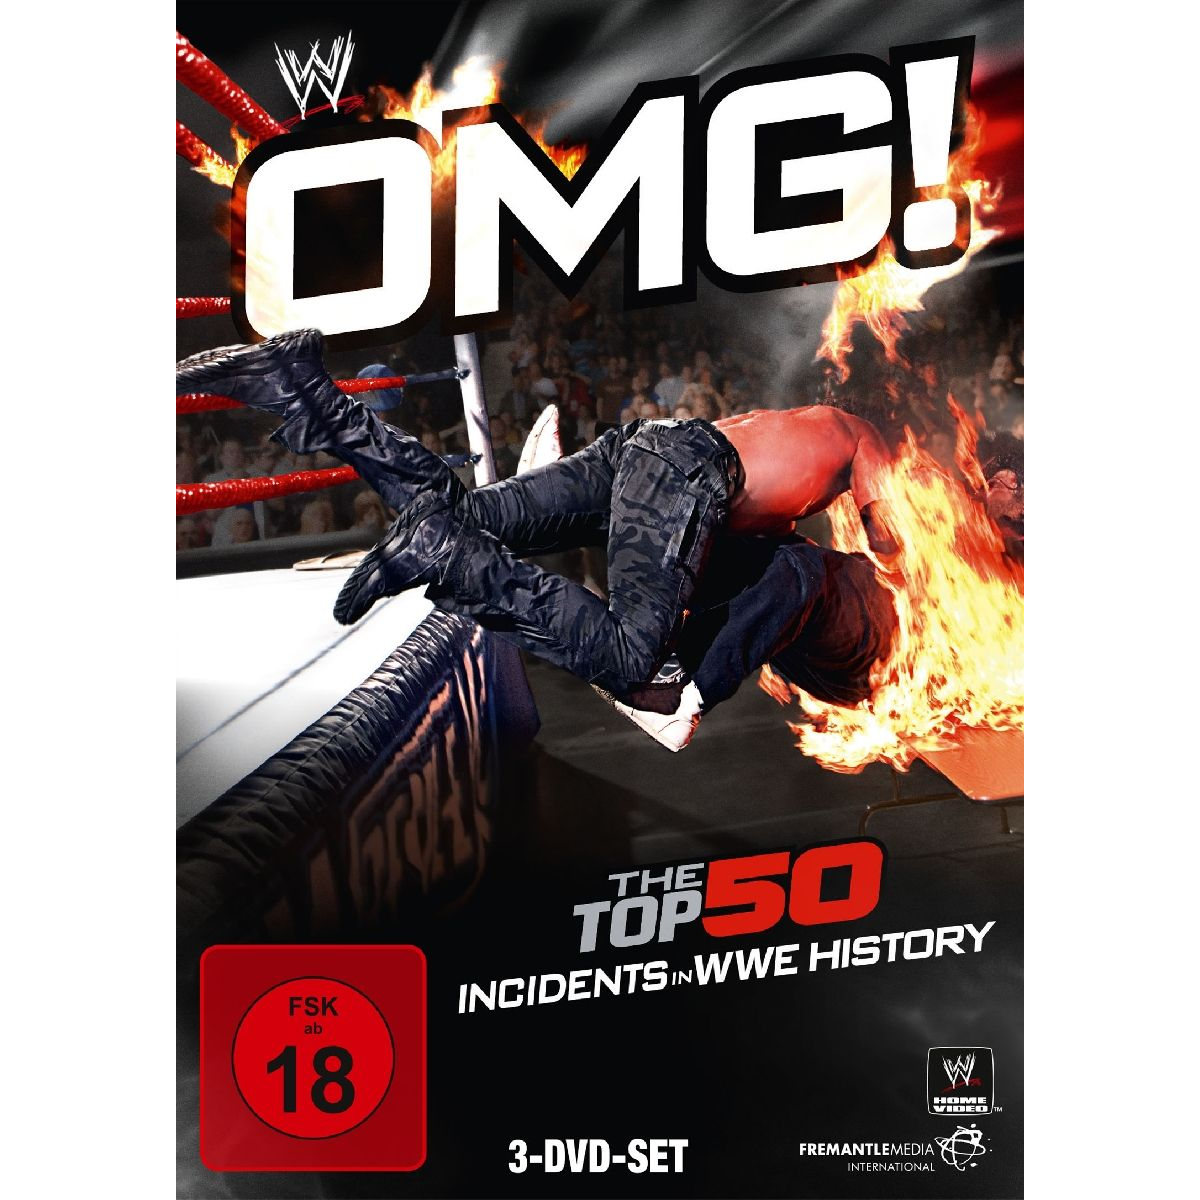 WWE: OMG-The Top 50 Incidents In WWE History